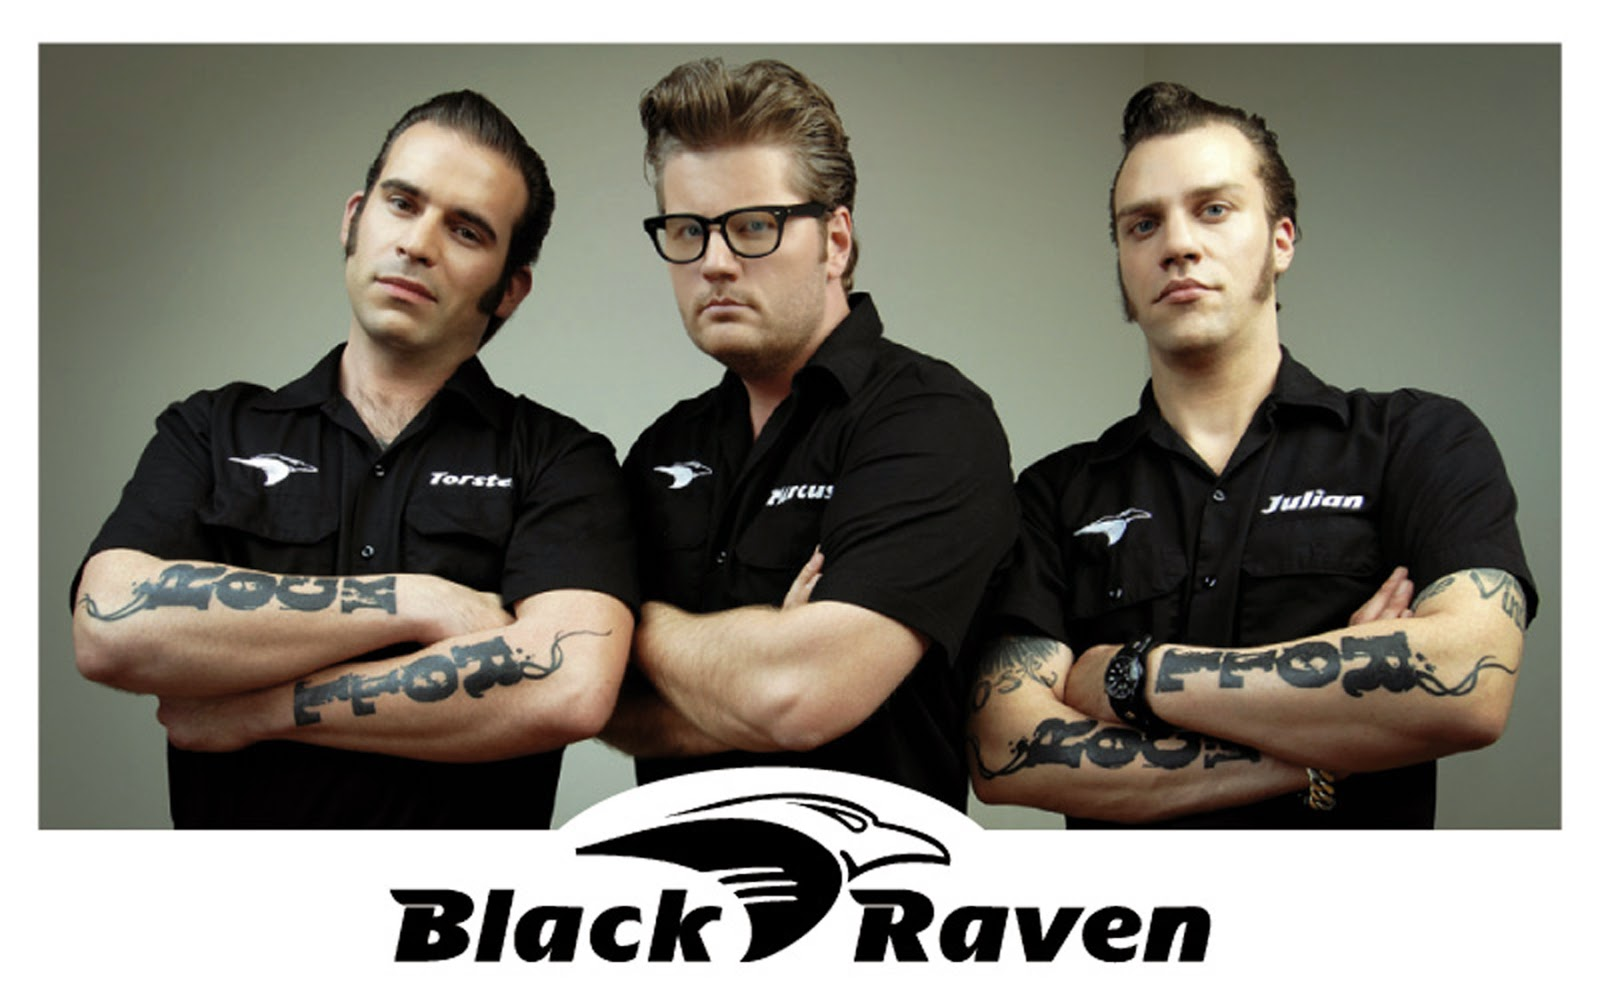 tiki-proudly-presents-black-raven-live-ii-kyriaki-21-septemvriou